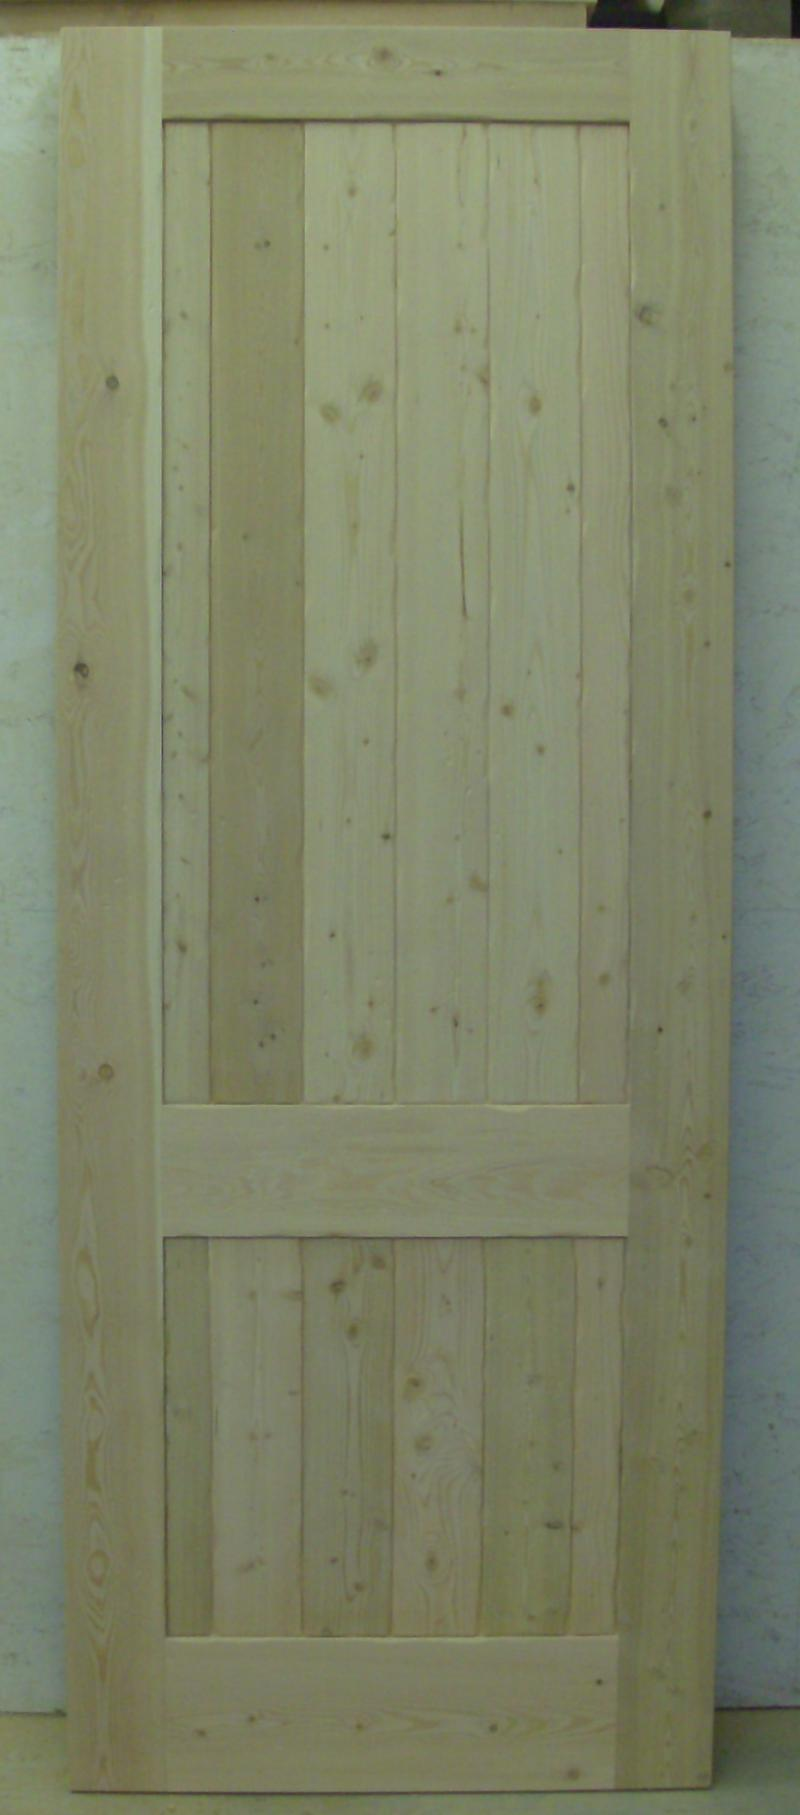 Fir two panel plank style door with medium distress.